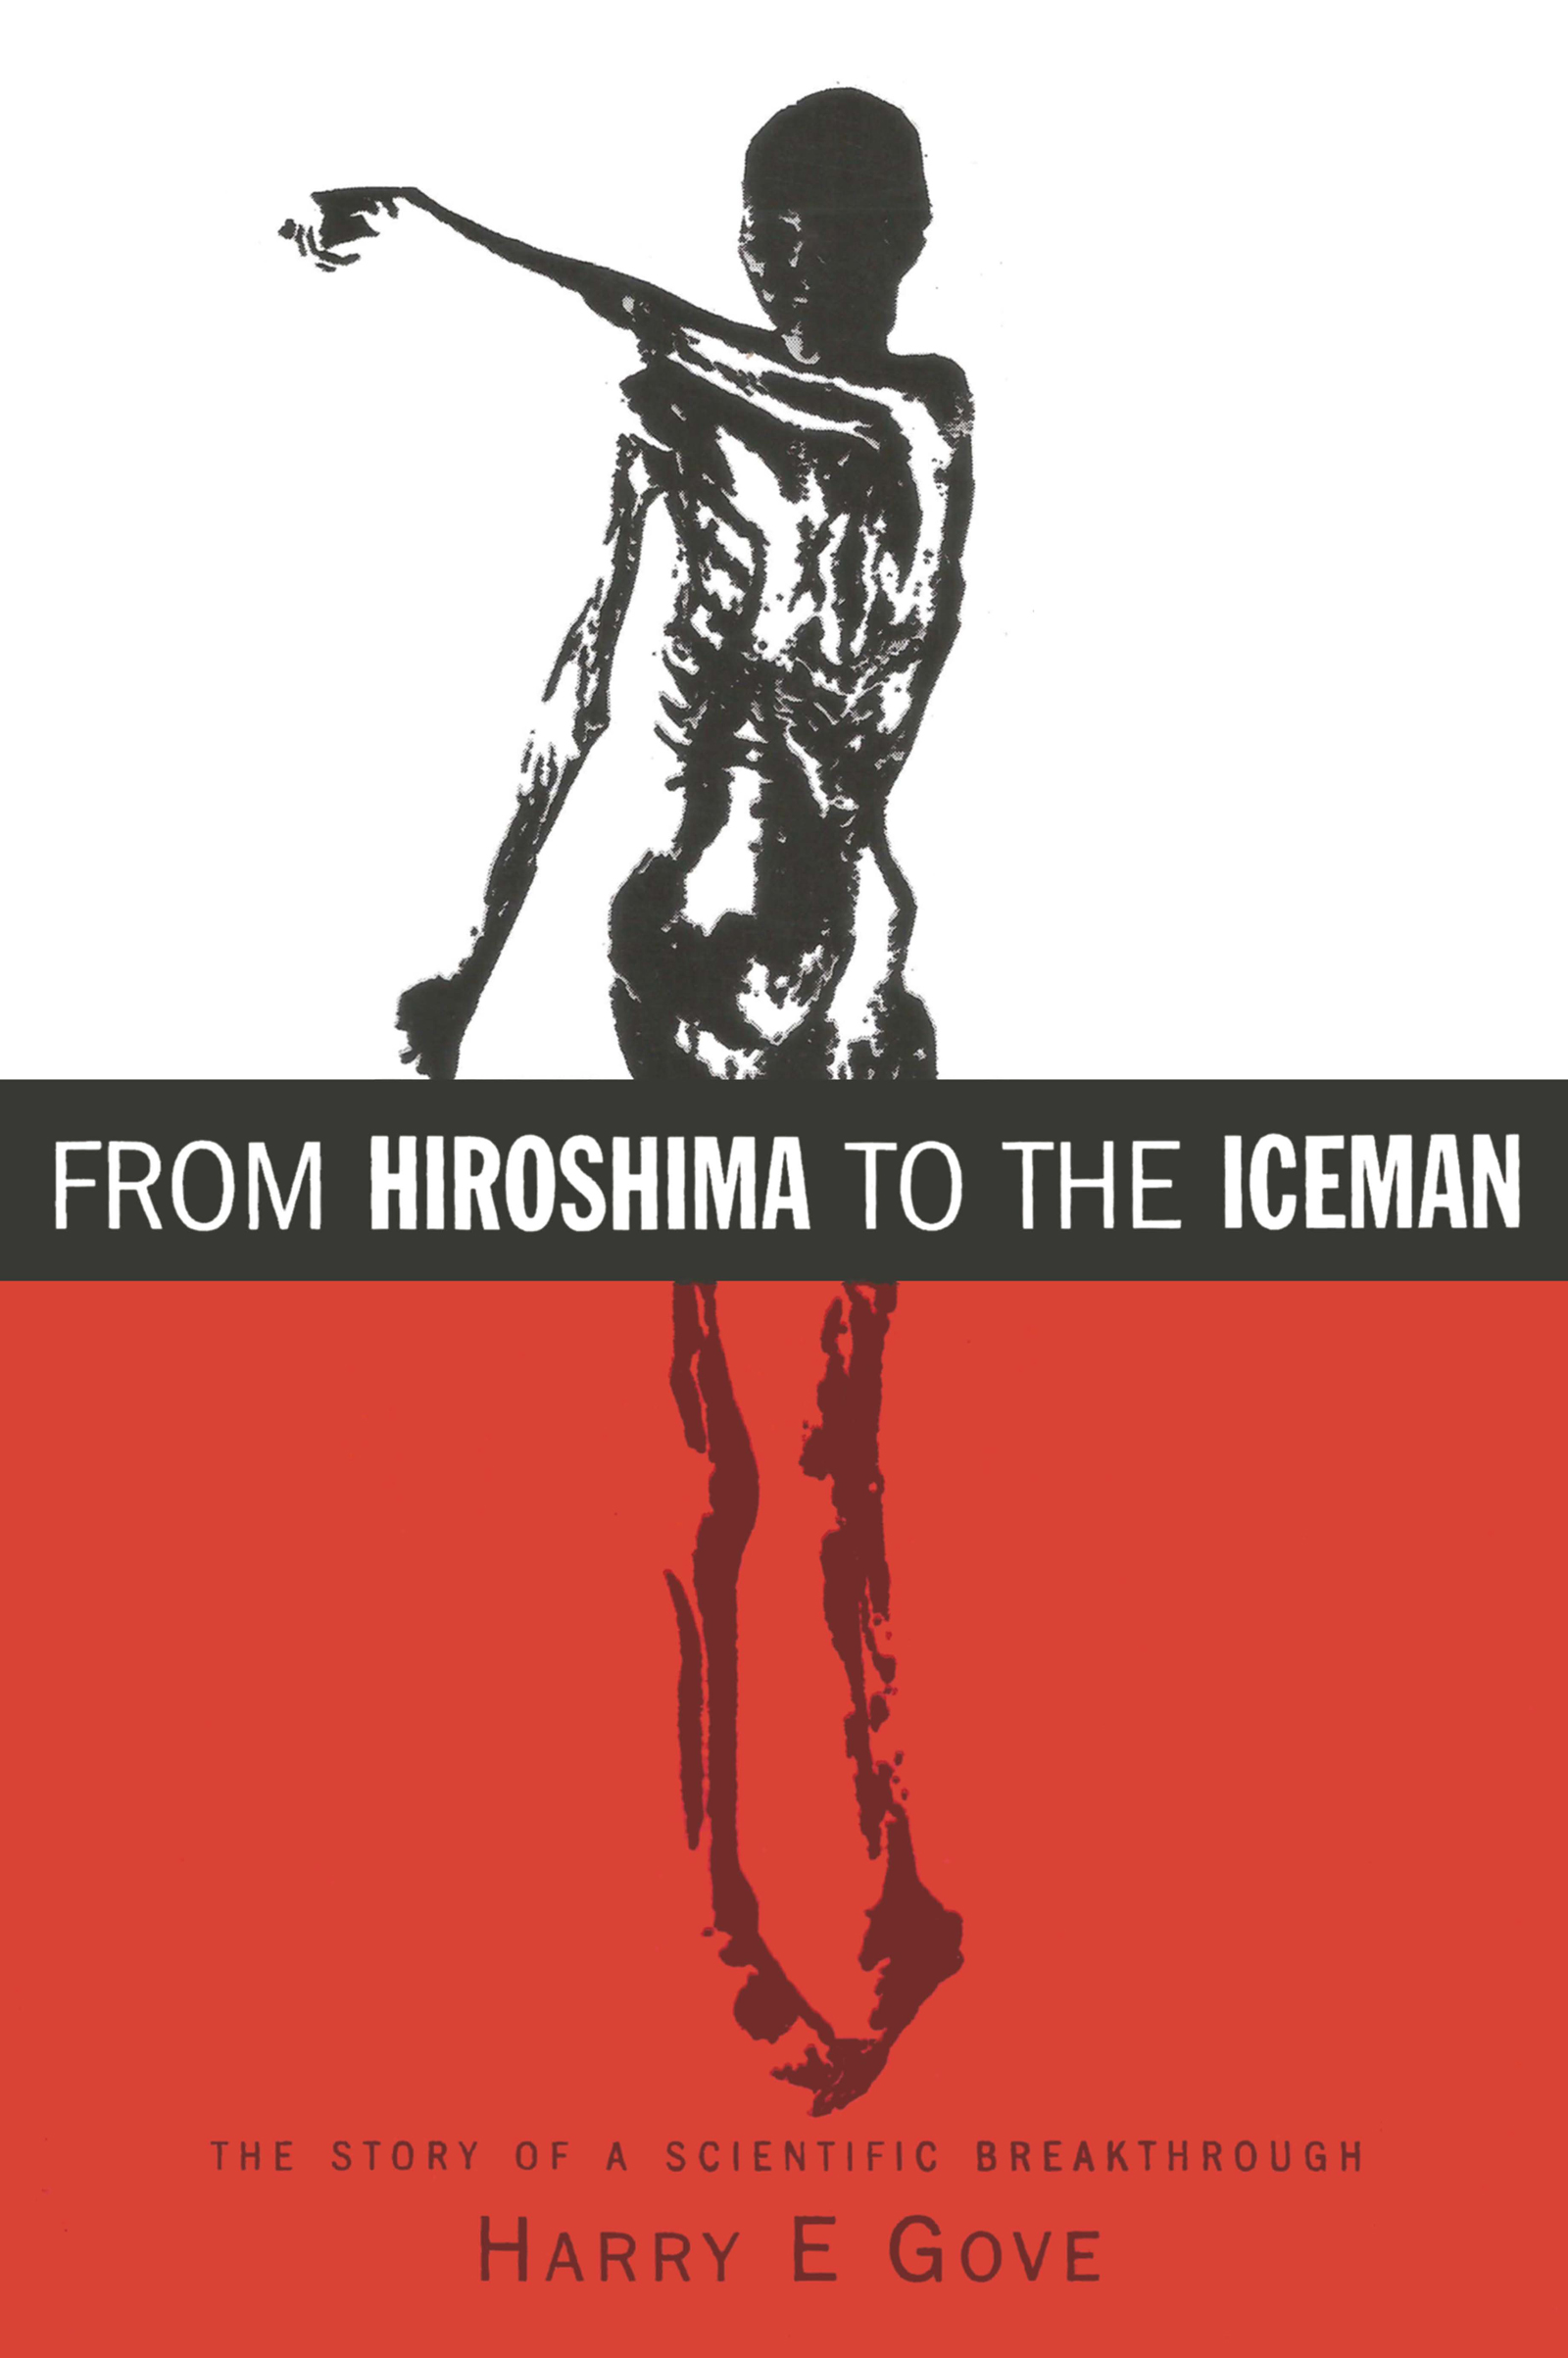 From Hiroshima to the Iceman: The Development and Applications of Accelerator Mass Spectrometry book cover